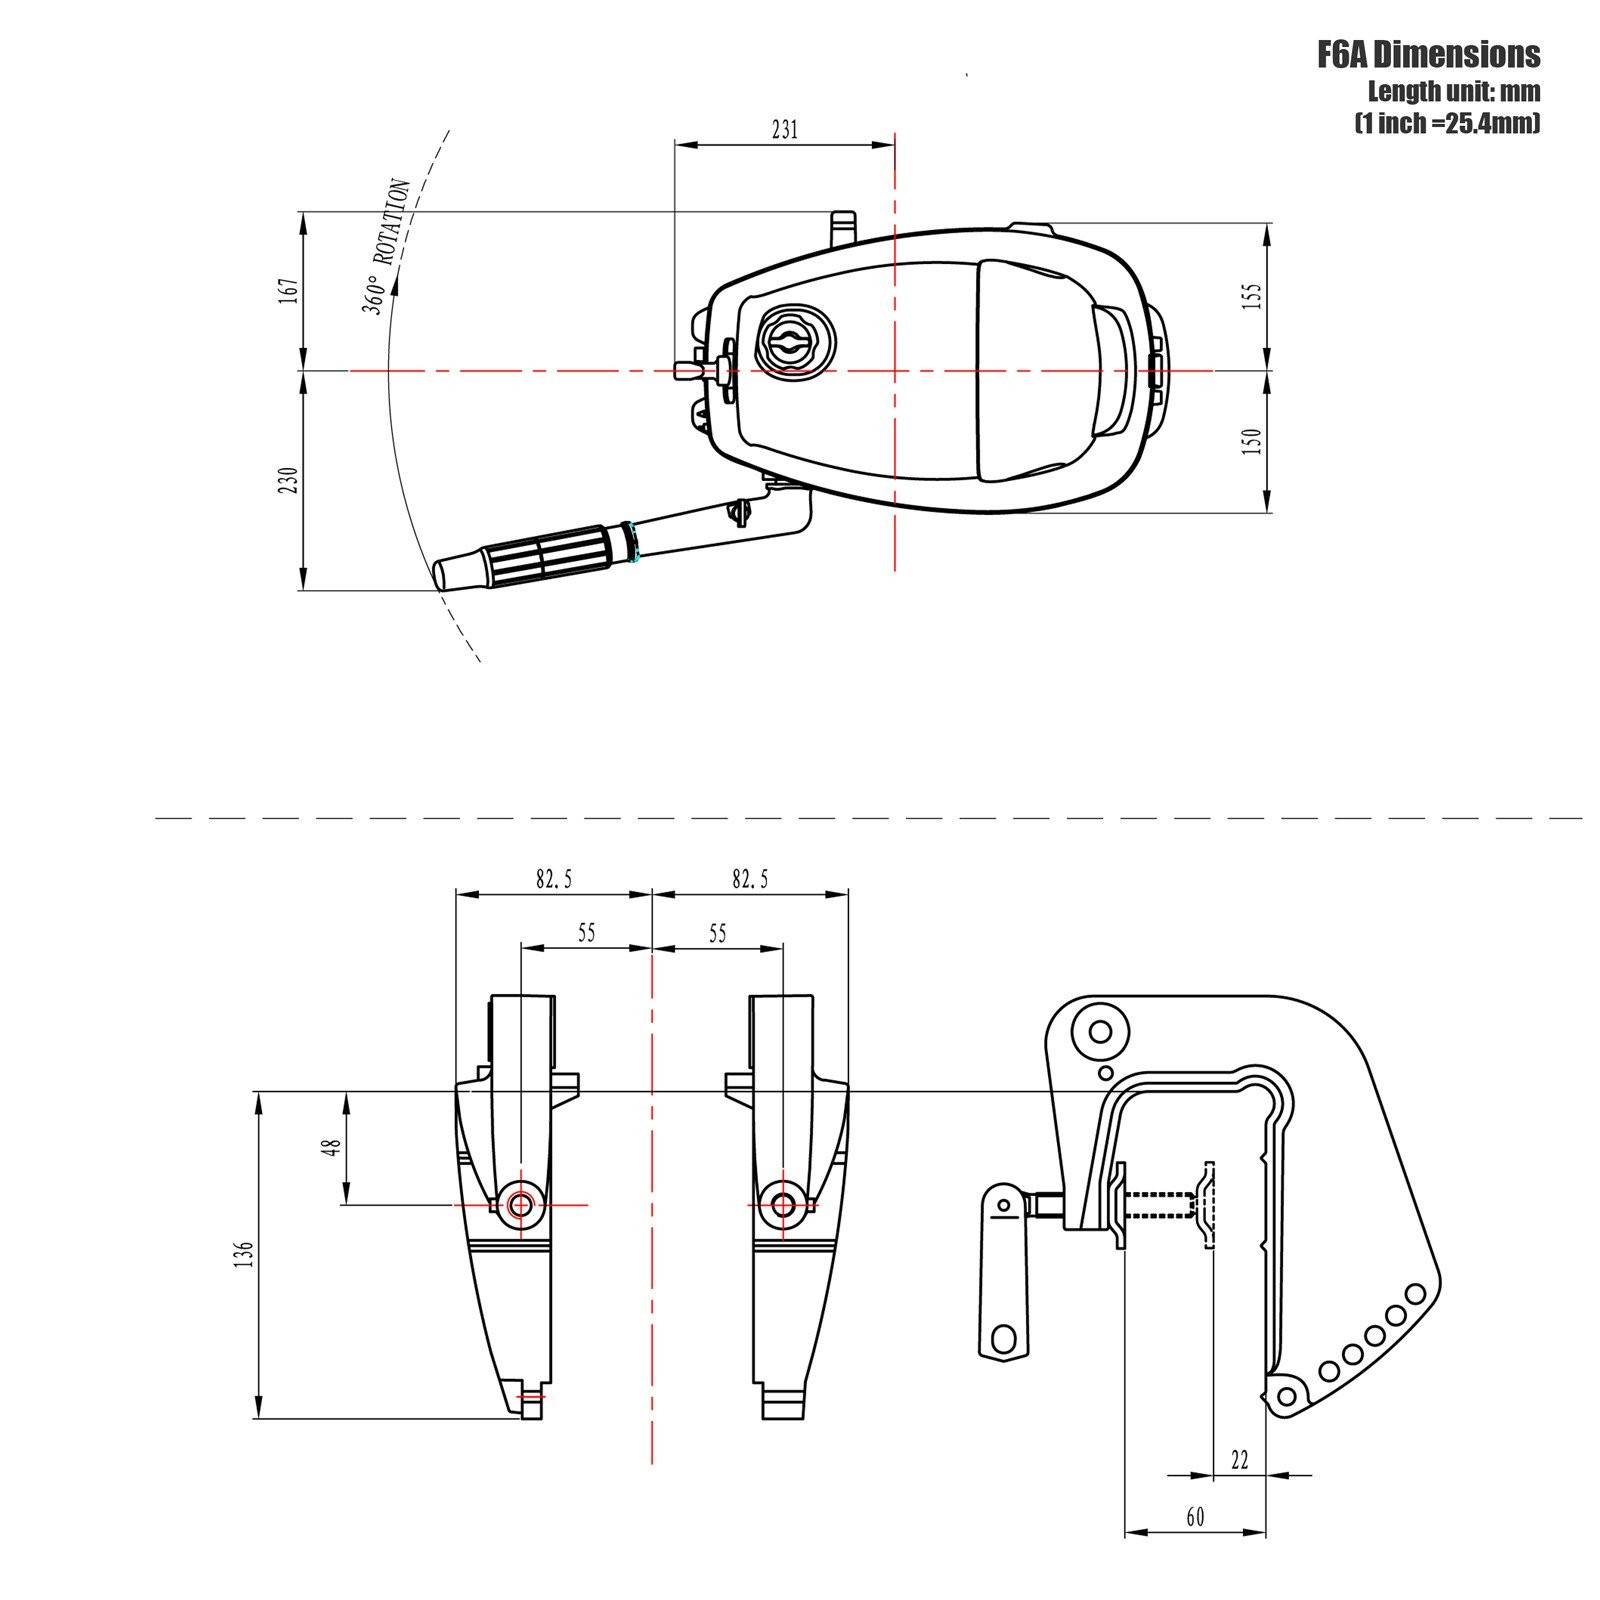 Outboard engine diagram outboard motor engine diagram website cool outboard engine diagram parsun 6hp portable 4 stroke outboard motor tiller handle built in of outboard ccuart Images